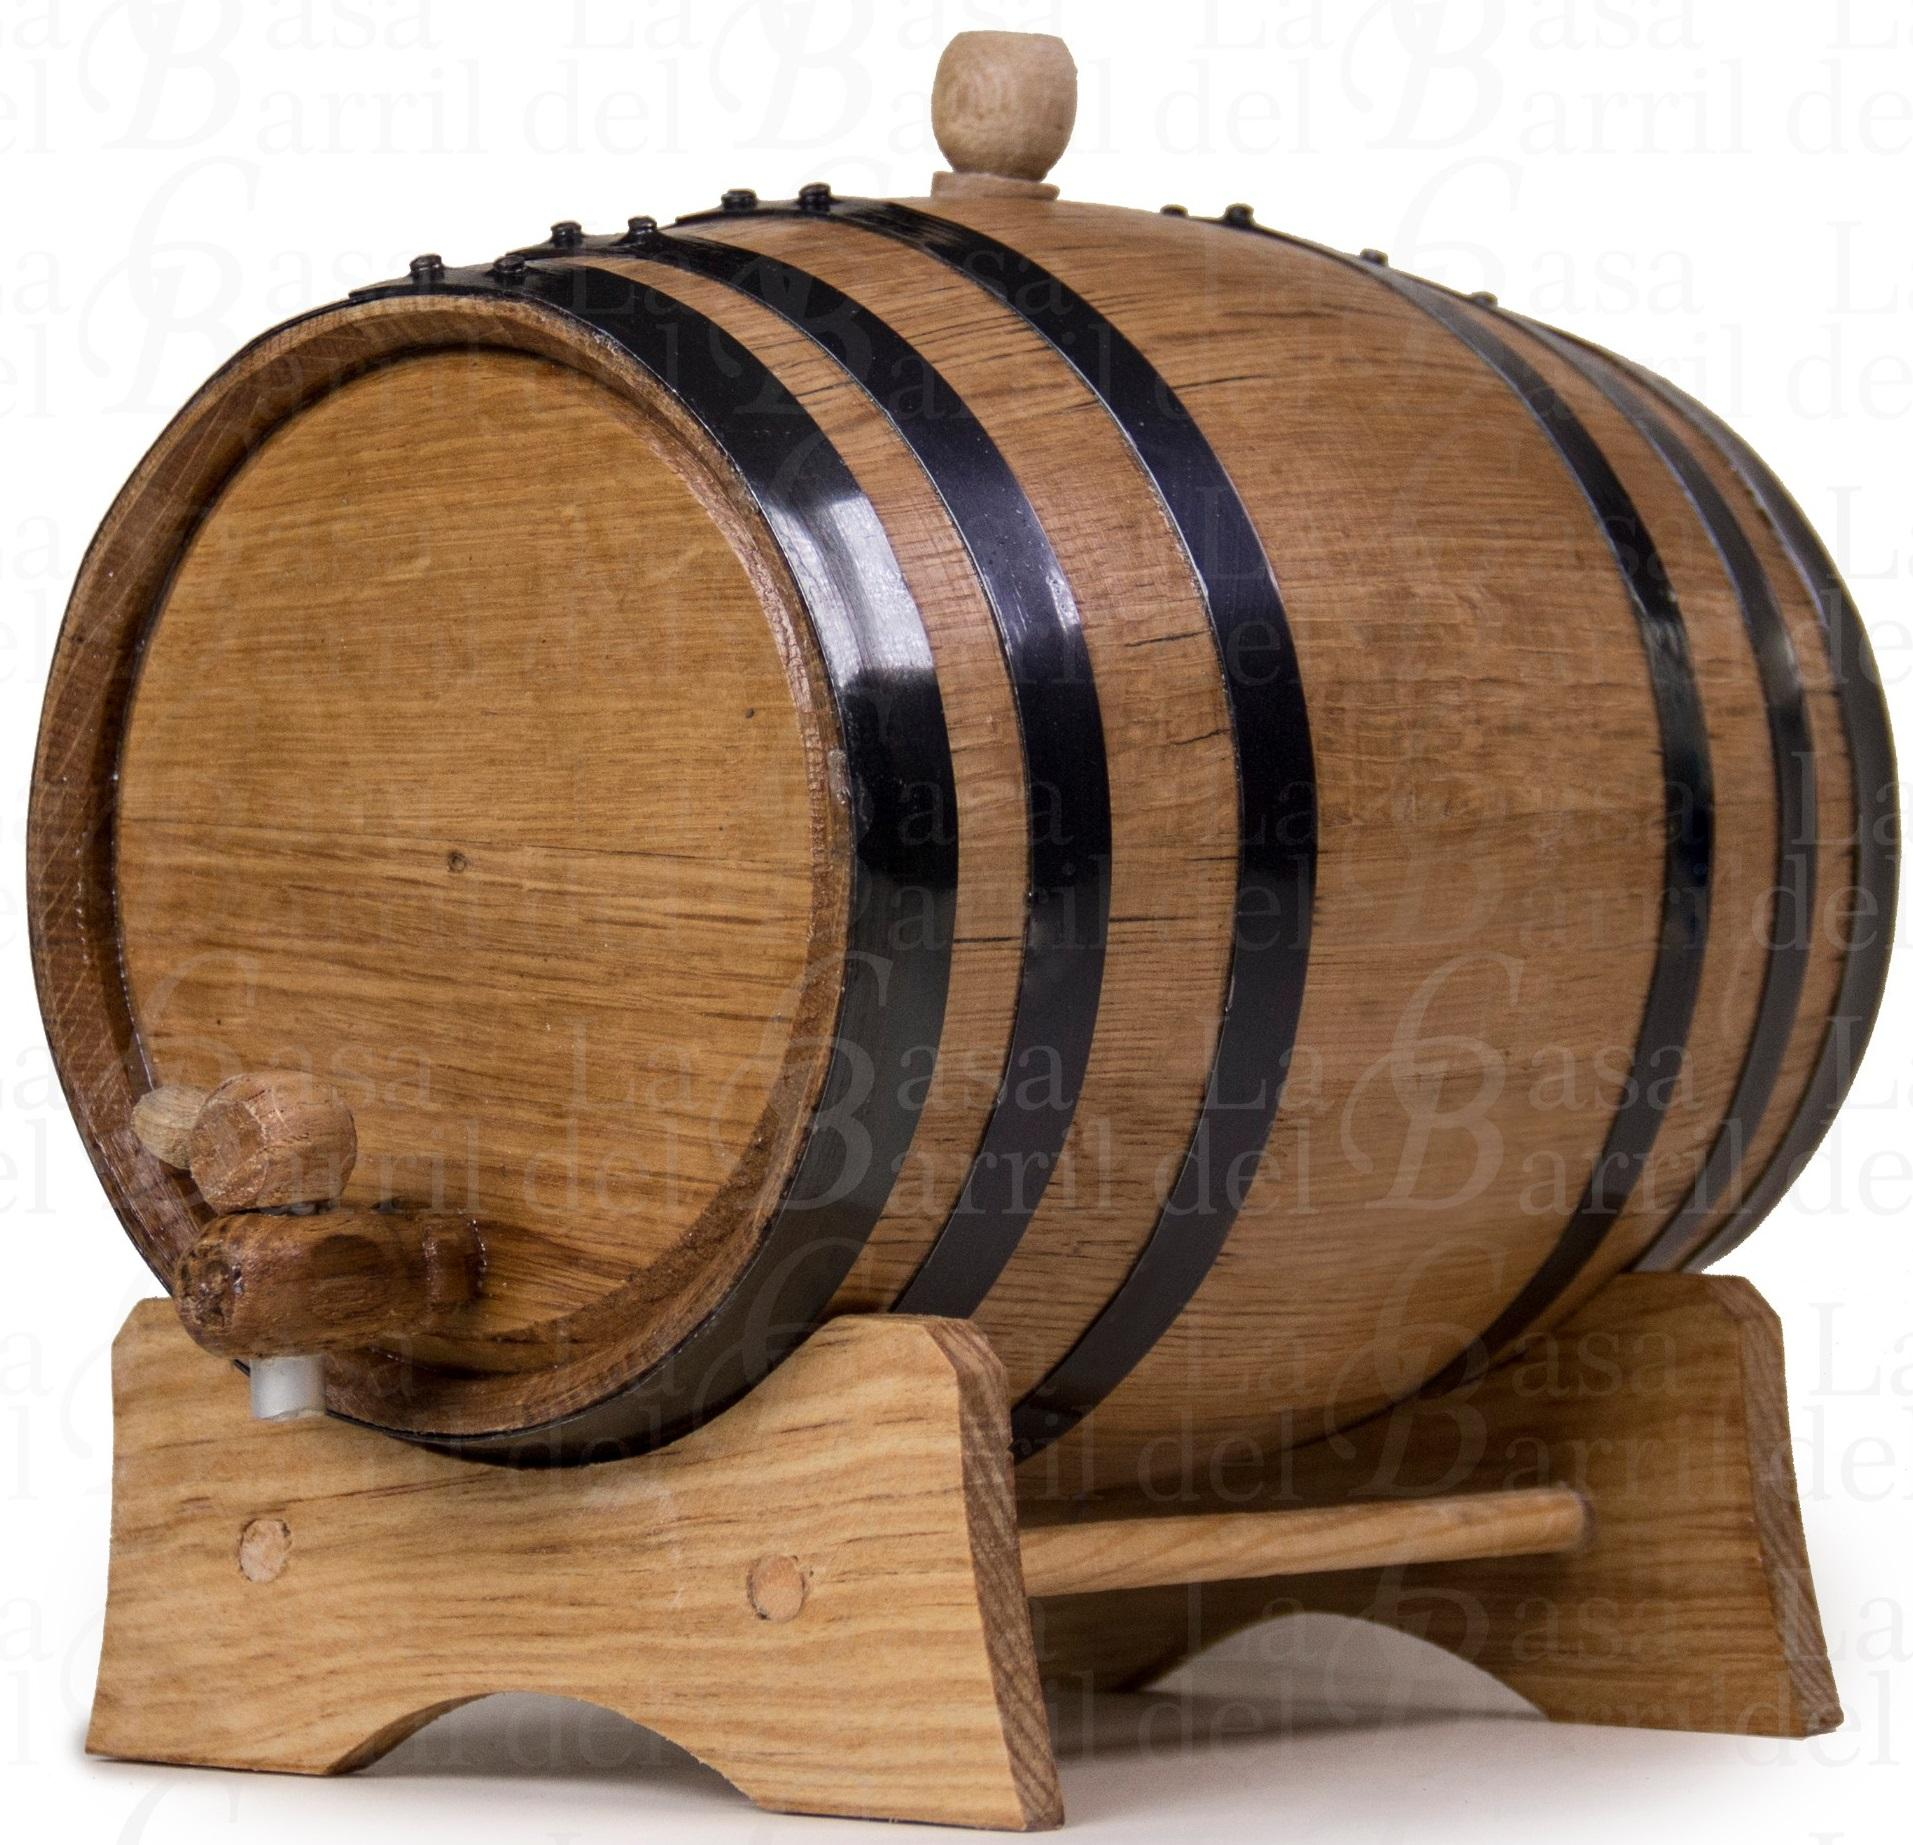 Handmade white oak barrel 3 liter , to age whiskey, tequila, ron, beer, wine